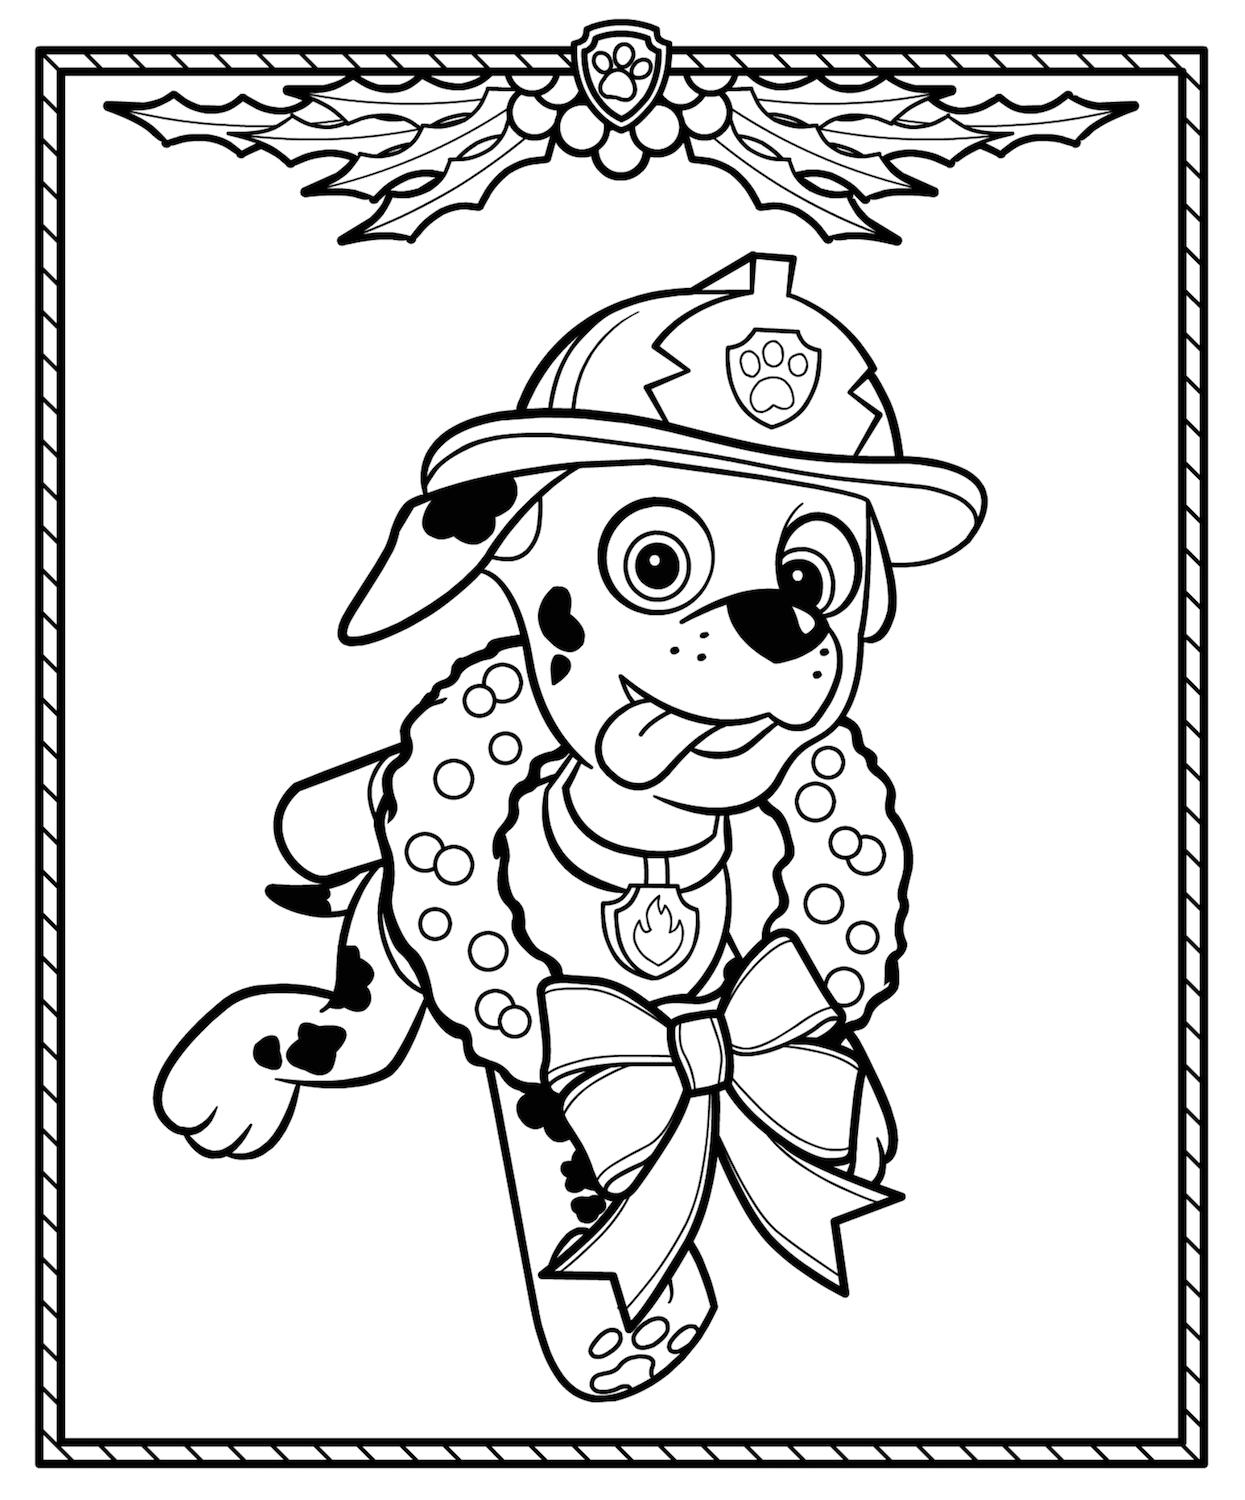 Christmas Paw Patrol Coloring Pages : christmas, patrol, coloring, pages, Christmas, Coloring, Pages, Patrol, Coloring,, Christmas,